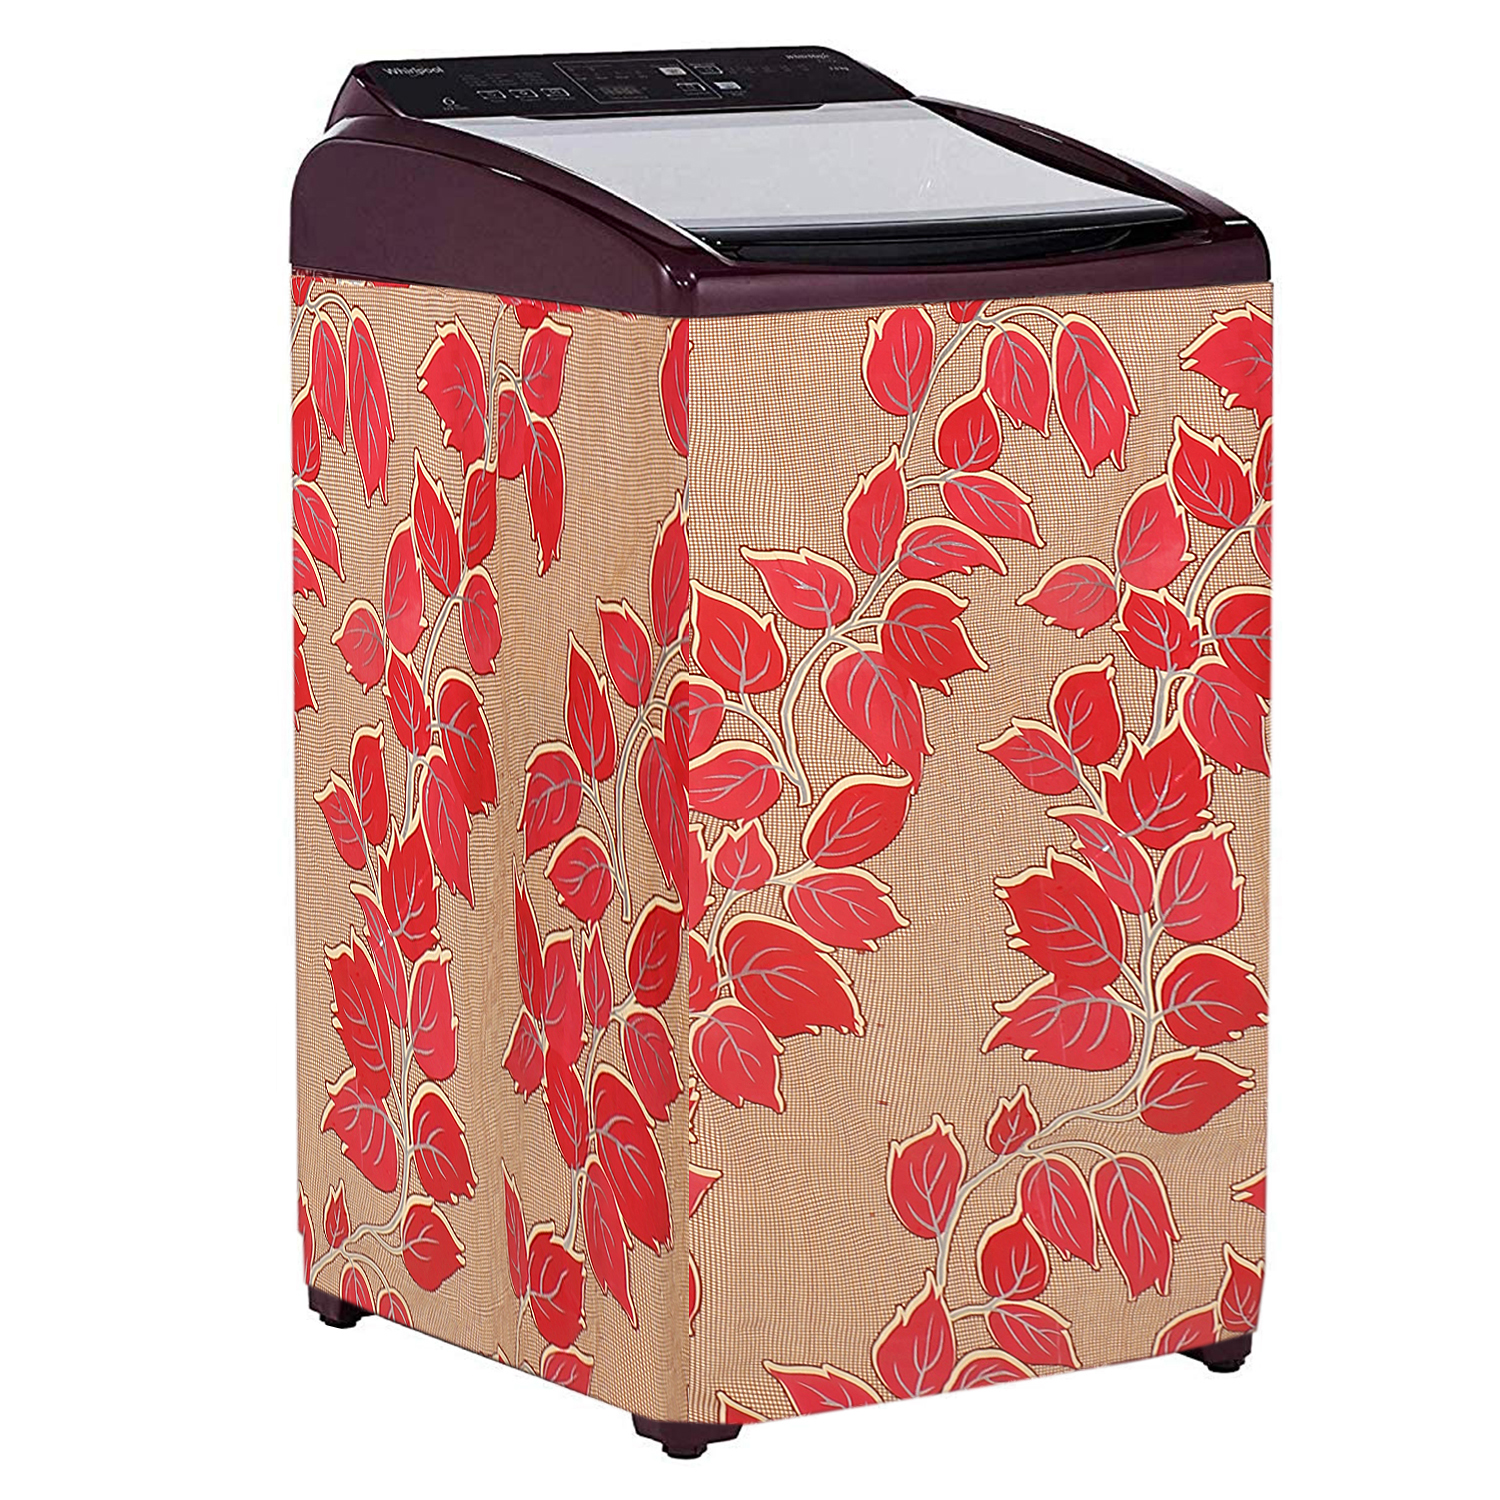 Kuber Industries Leaf Design PVC Top Load Fully Automatic Washing Machine Cover (Red)